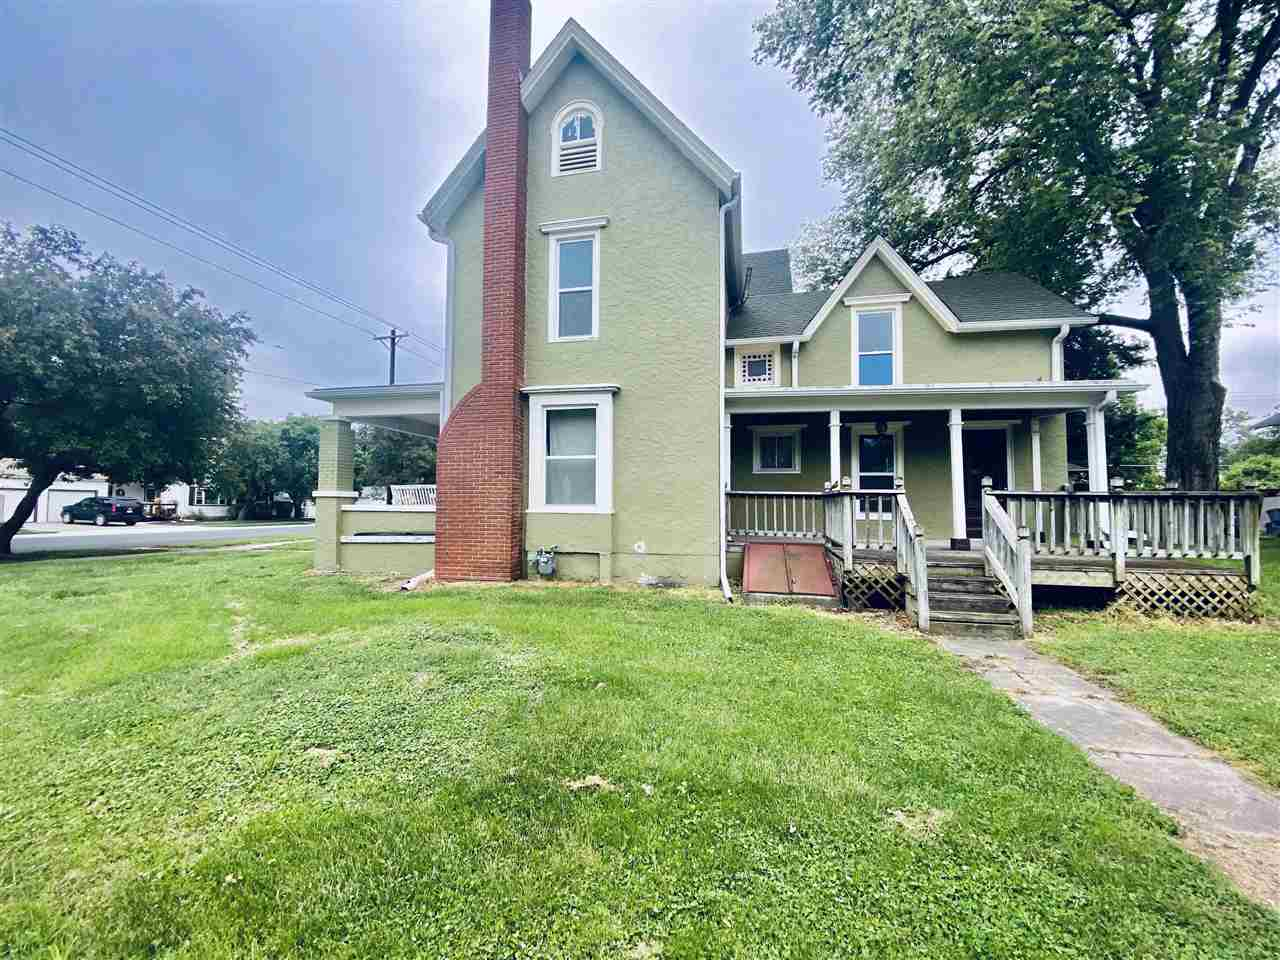 """This is your opportunity to finish a project that is close to being done.  Being sold """"as is"""".  Has had new wiring, plumbing, roof, windows, and siding done.  The kitchen has new cabinets and countertops and main floor bathroom is remodeled as well.  There are original wood floors on the majority of the main floor.  Five total bedrooms in this home with one on the main floor.  Lots of square footage for a family to spread out located close to Garfield elementary and downtown businesses."""